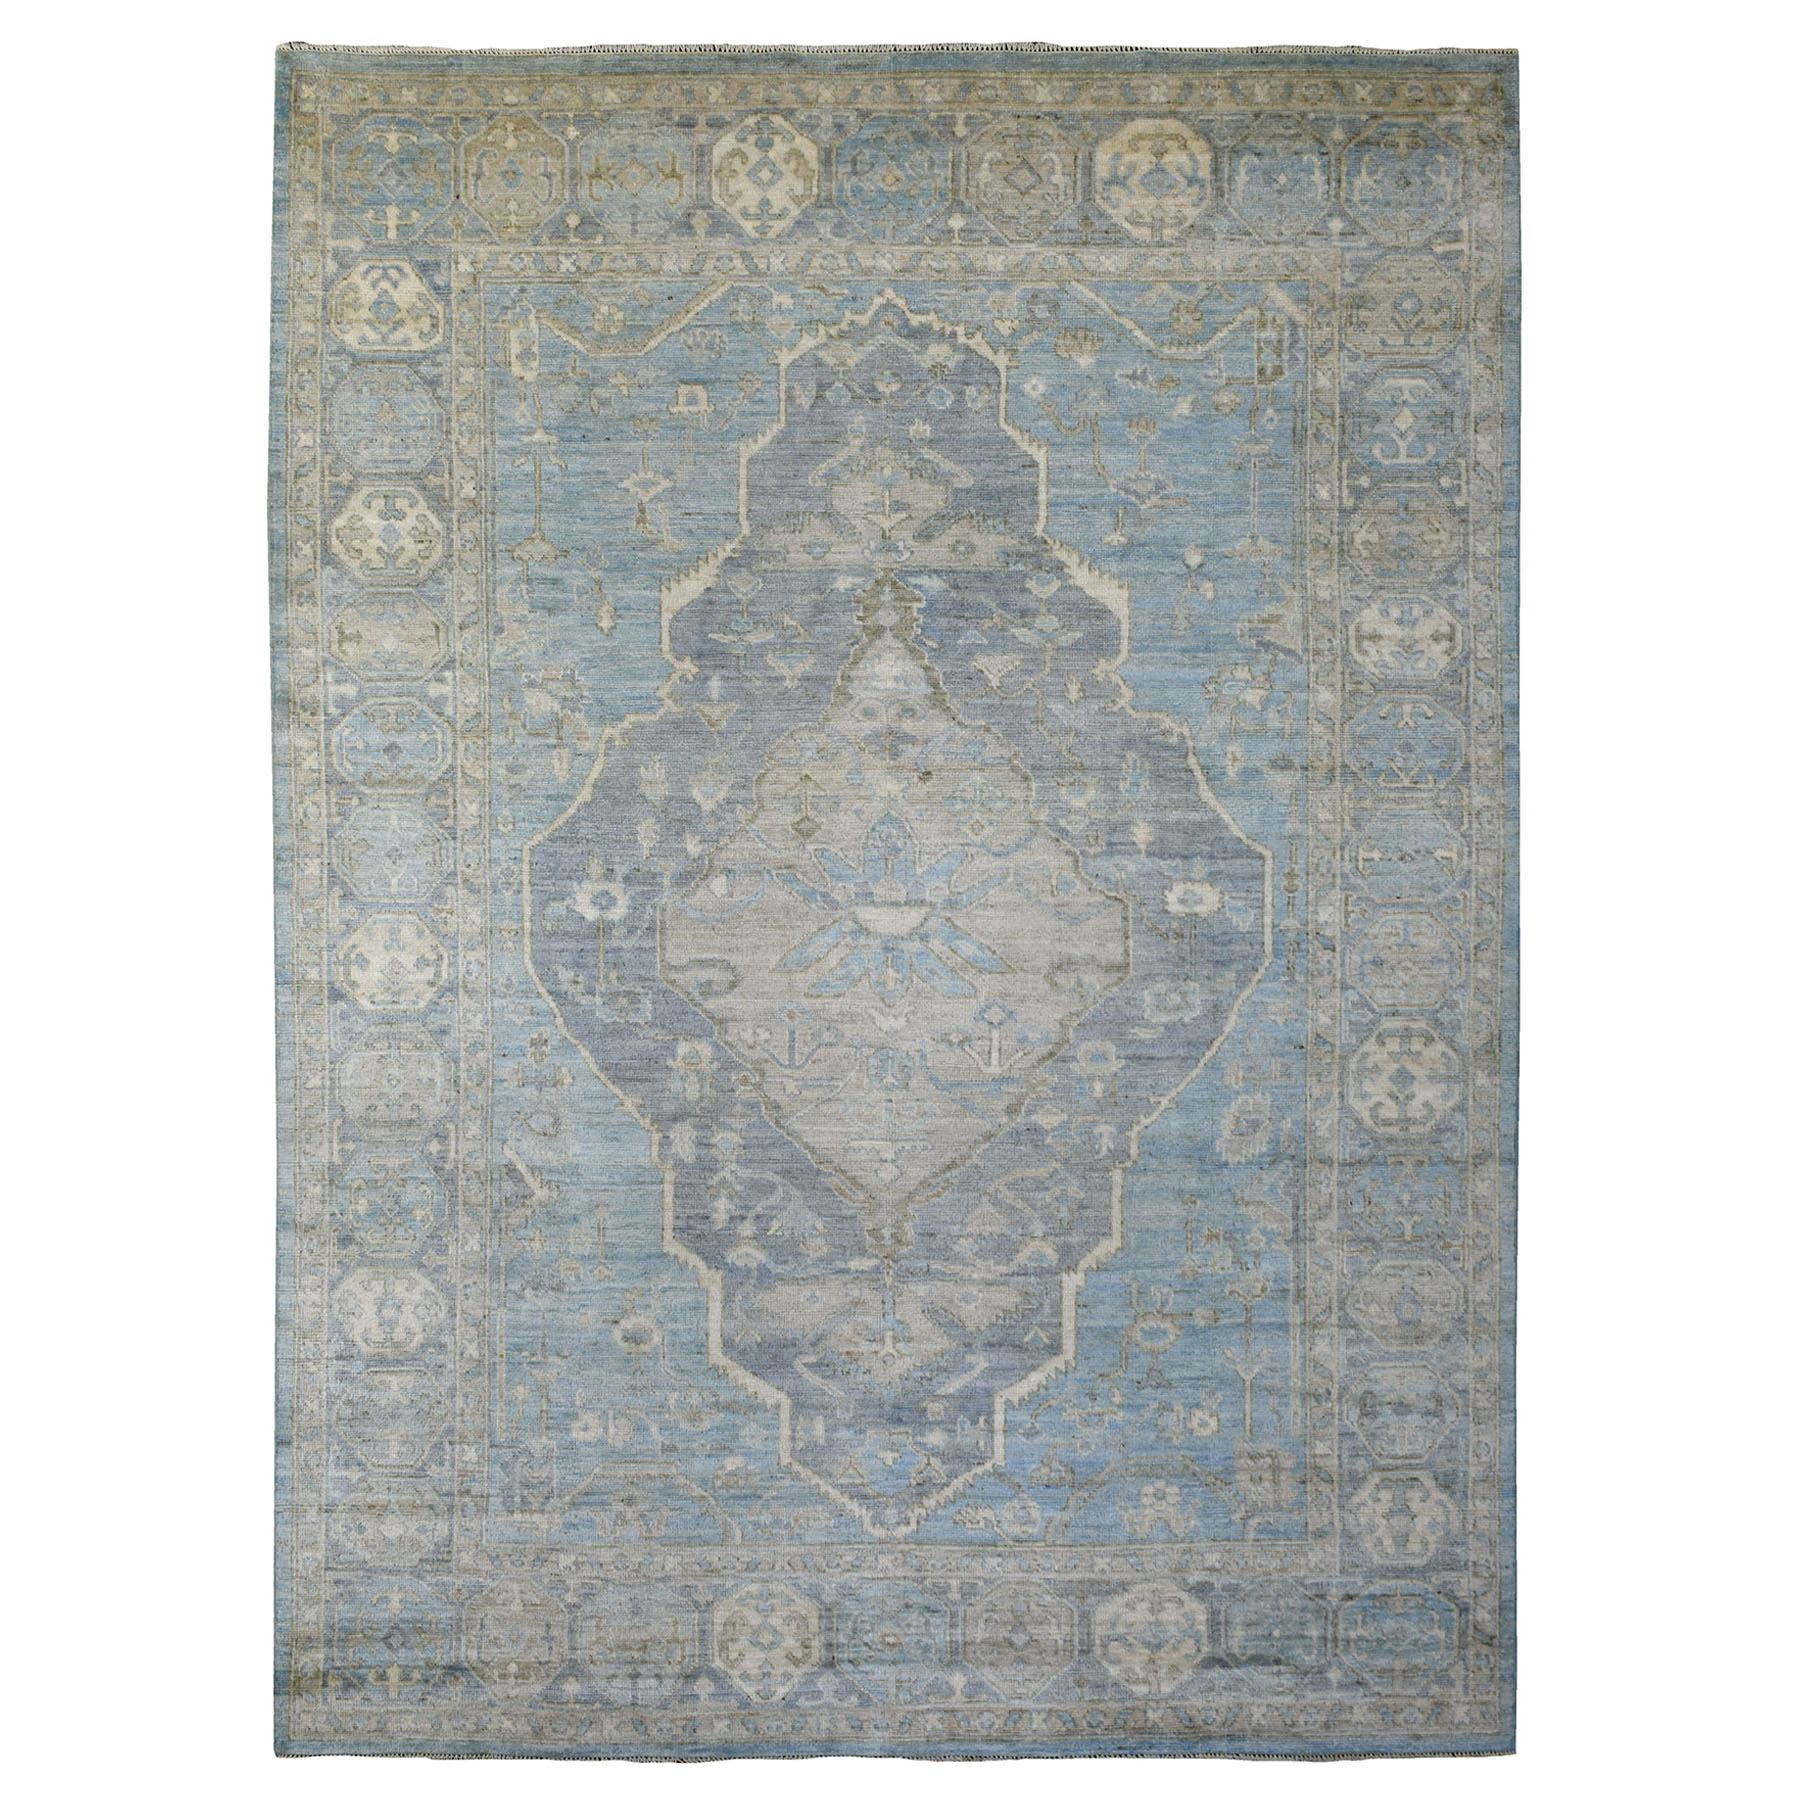 Nomadic And Village Collection Hand Knotted Blue Rug No: 1139270